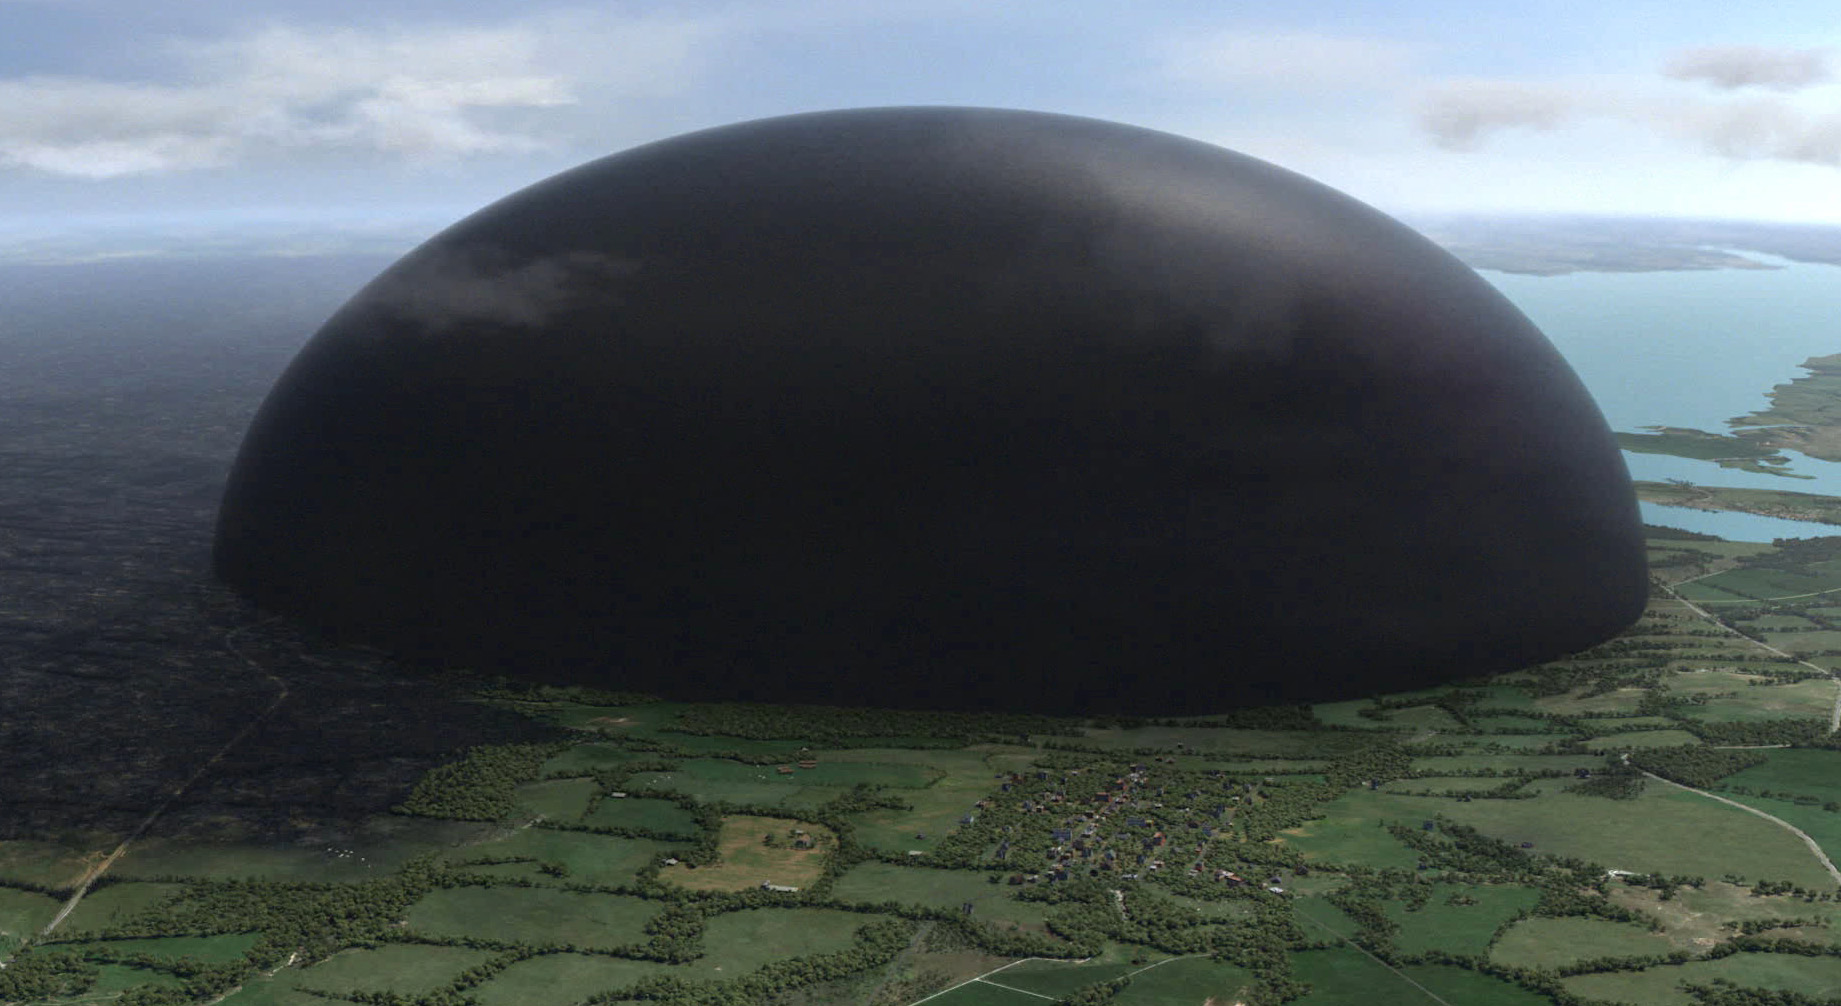 9. The Dome has the ability to turn completely black.